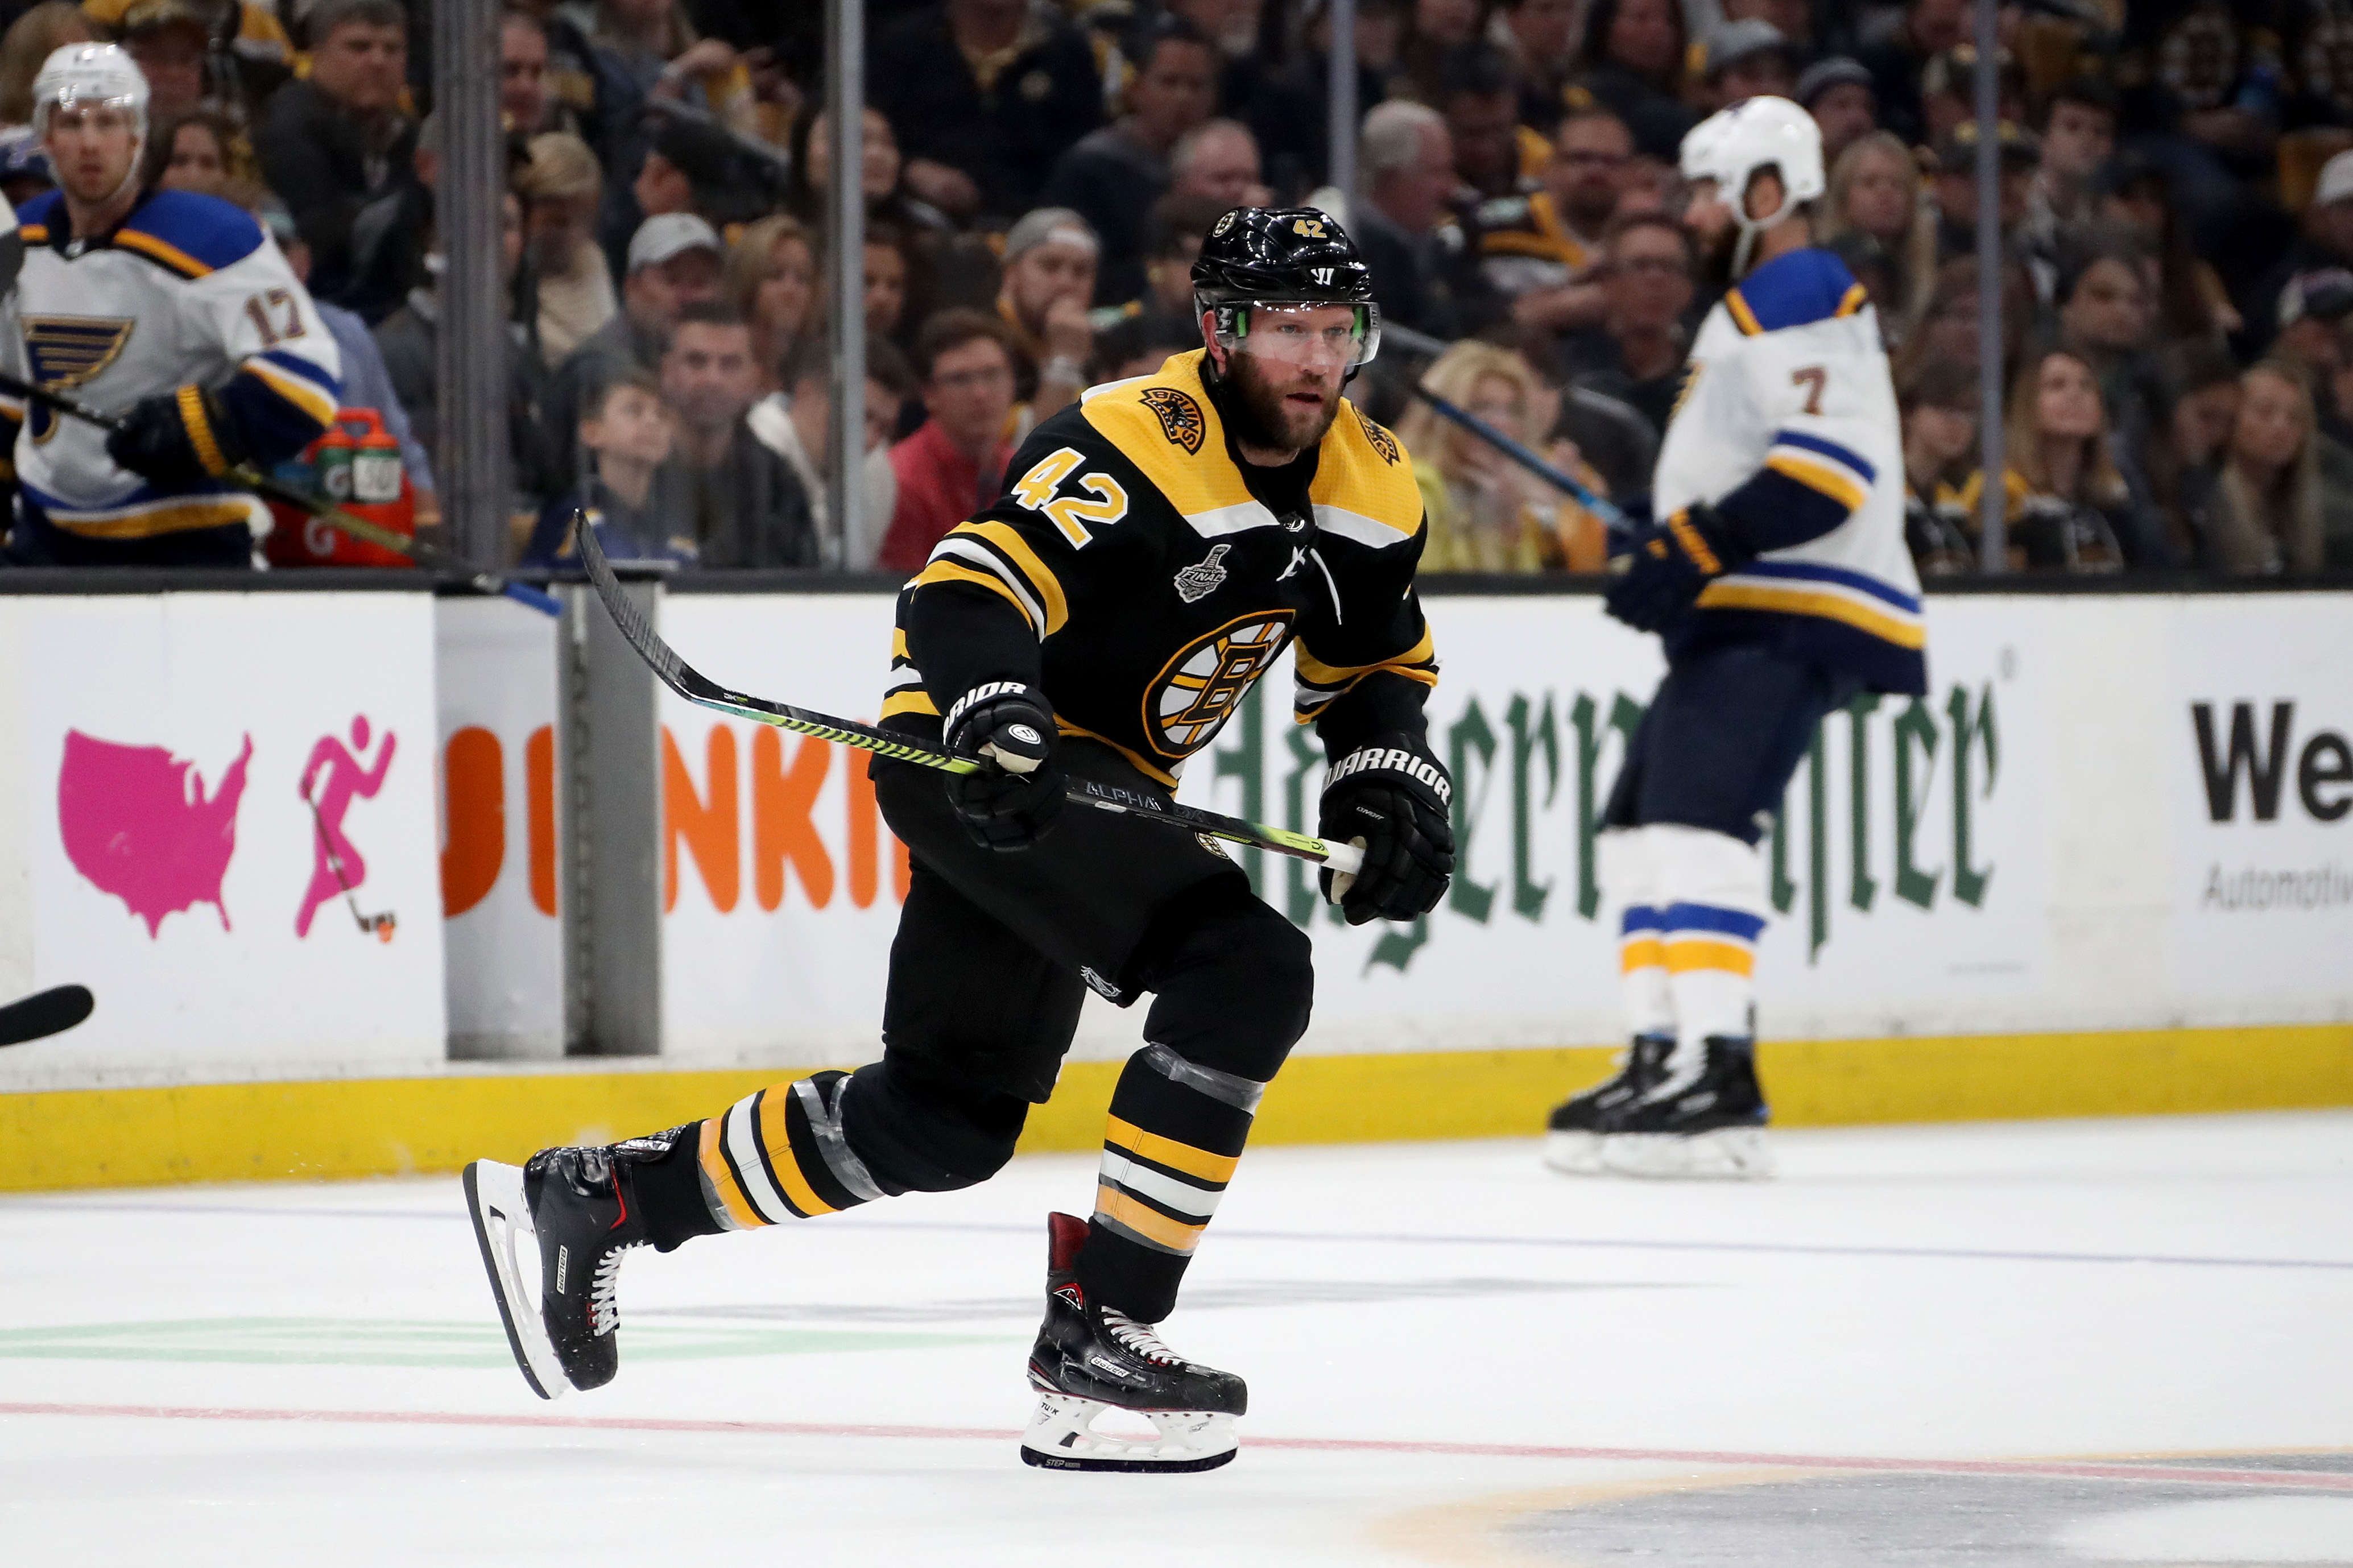 Bruins coach Bruce Cassidy must sit out David Backes in